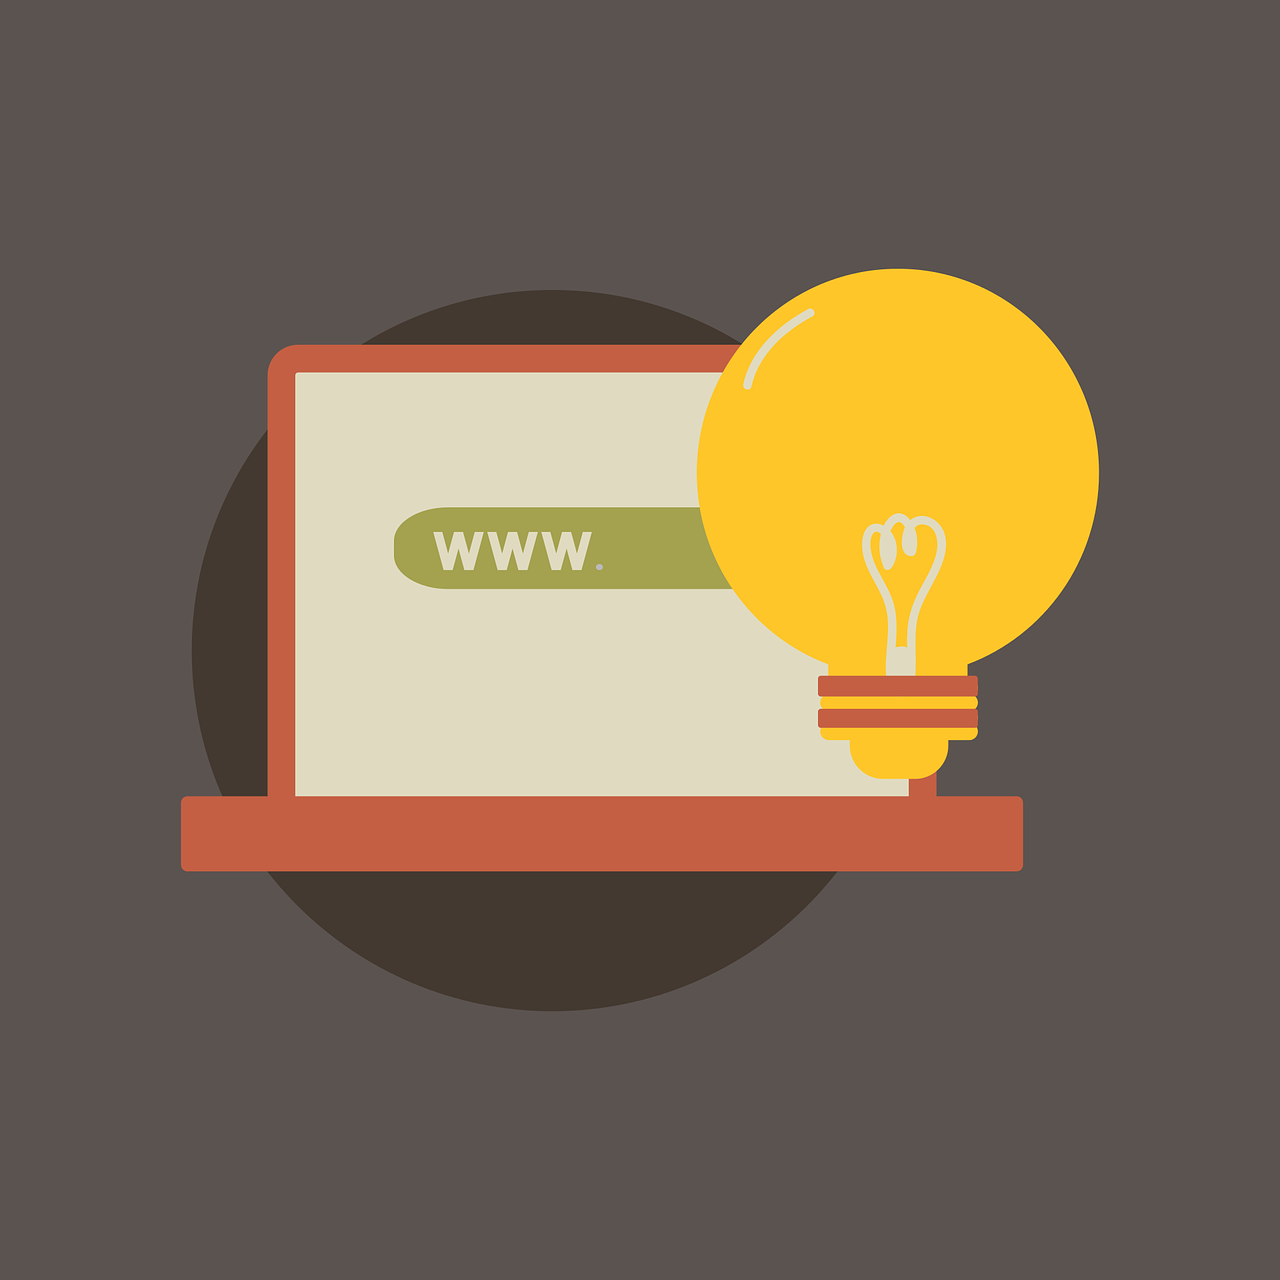 4 types of contentSpacebarspecializes in